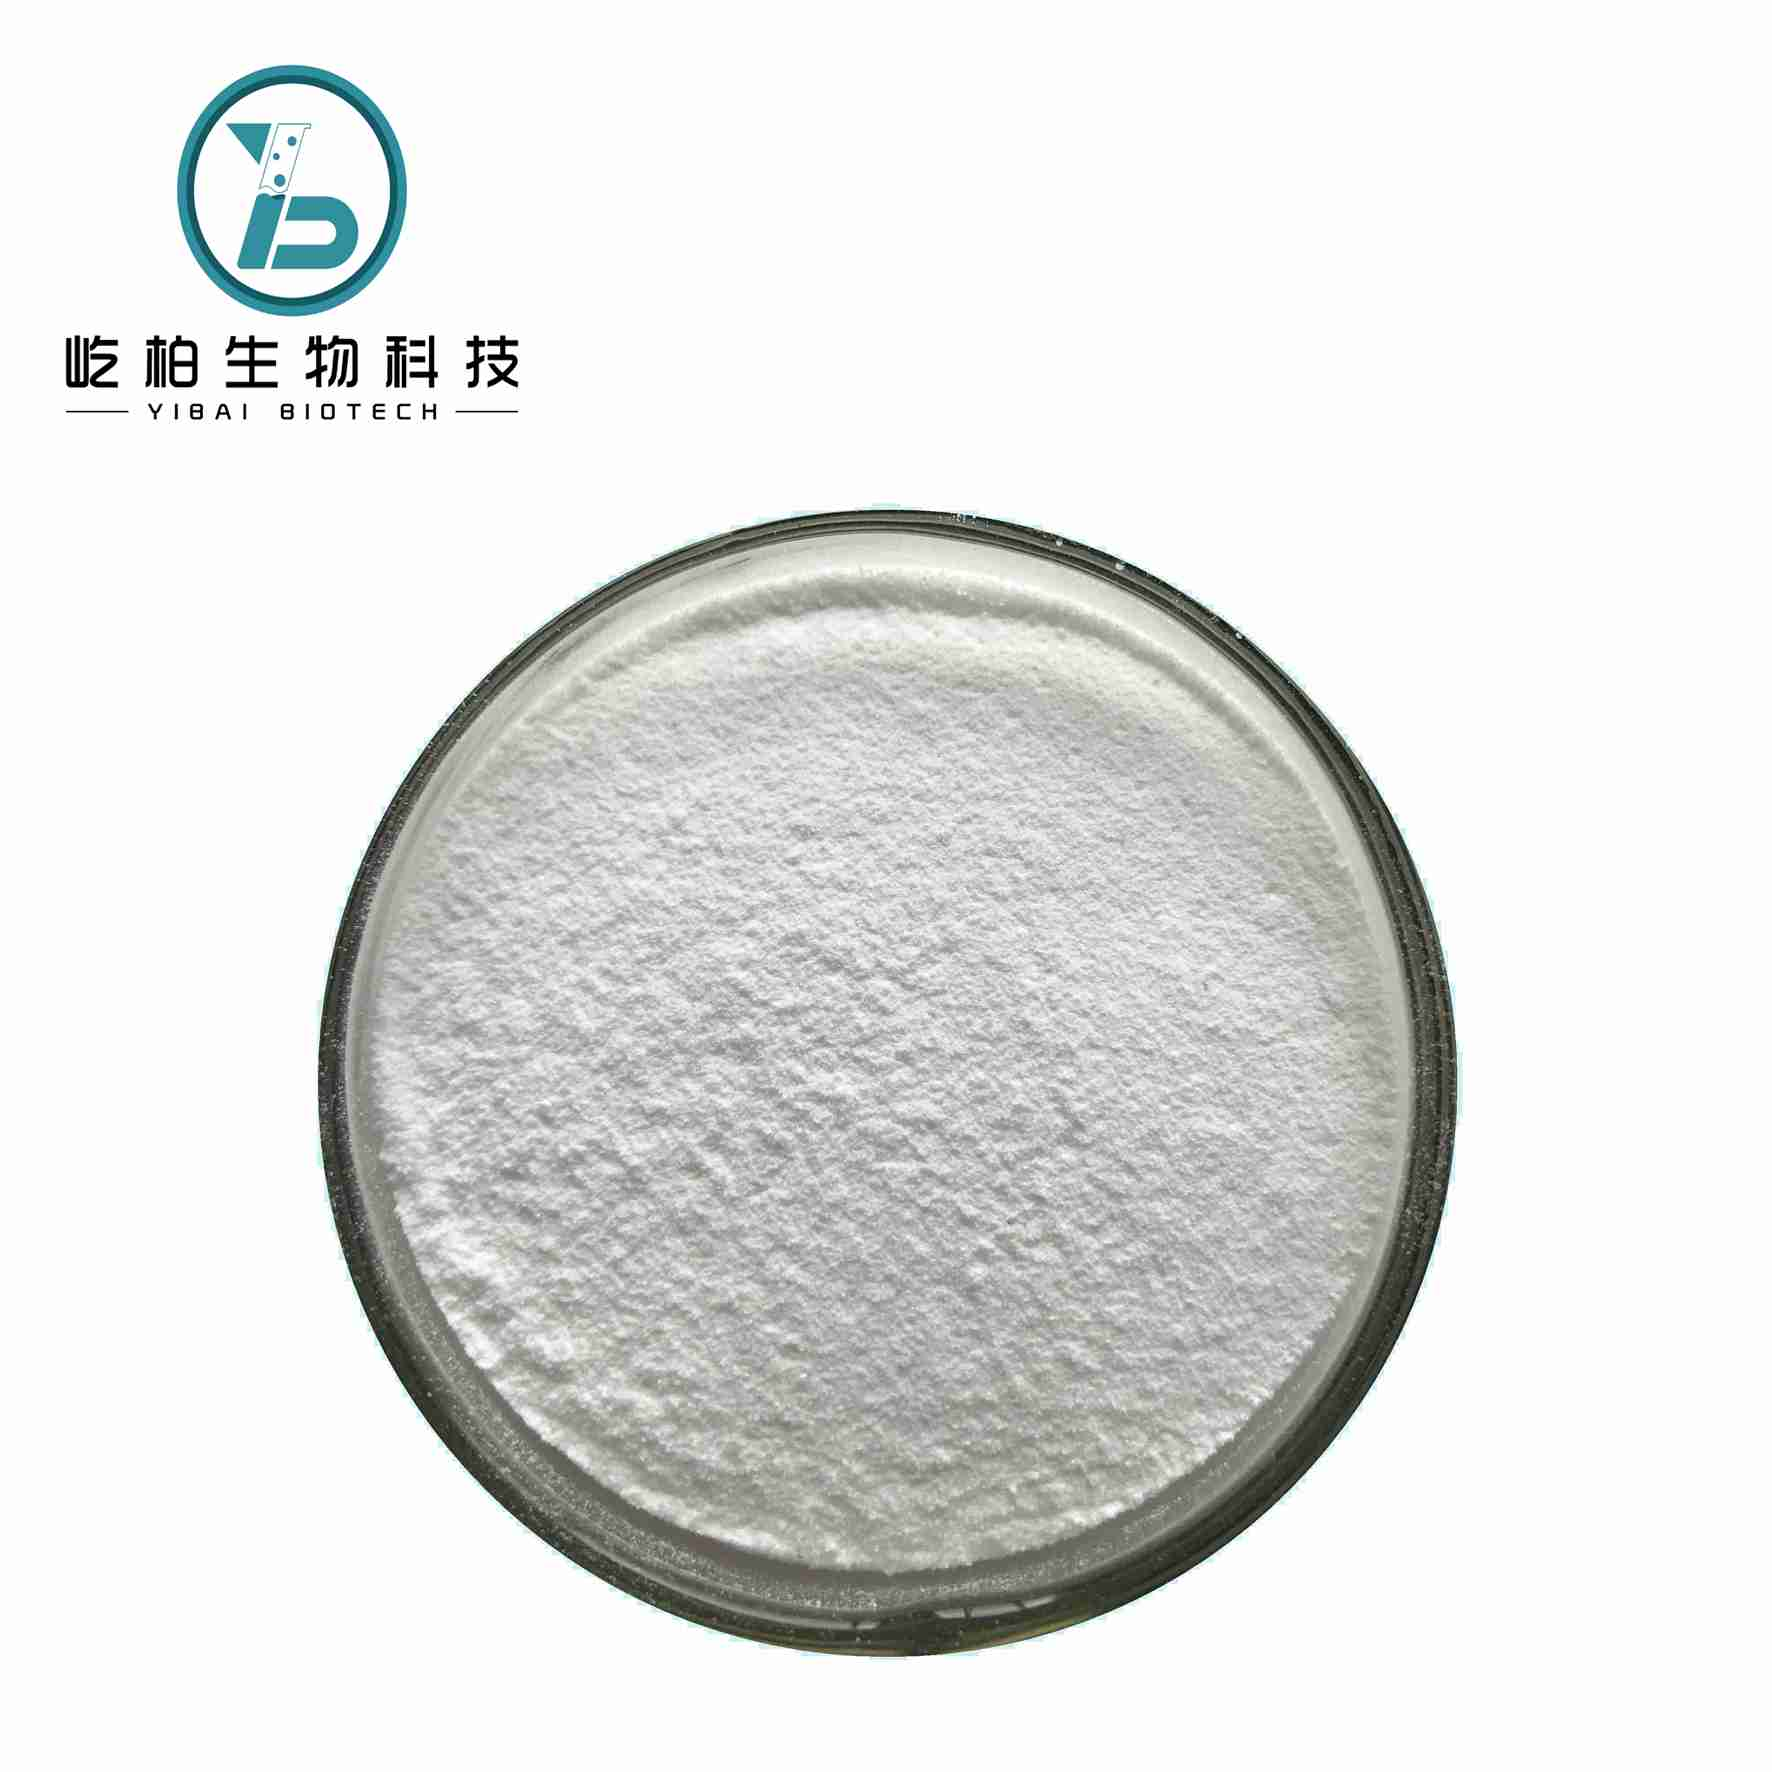 2 amino 2 phenylbutyric acid, 2 amino 2 phenylbutyric acid Suppliers